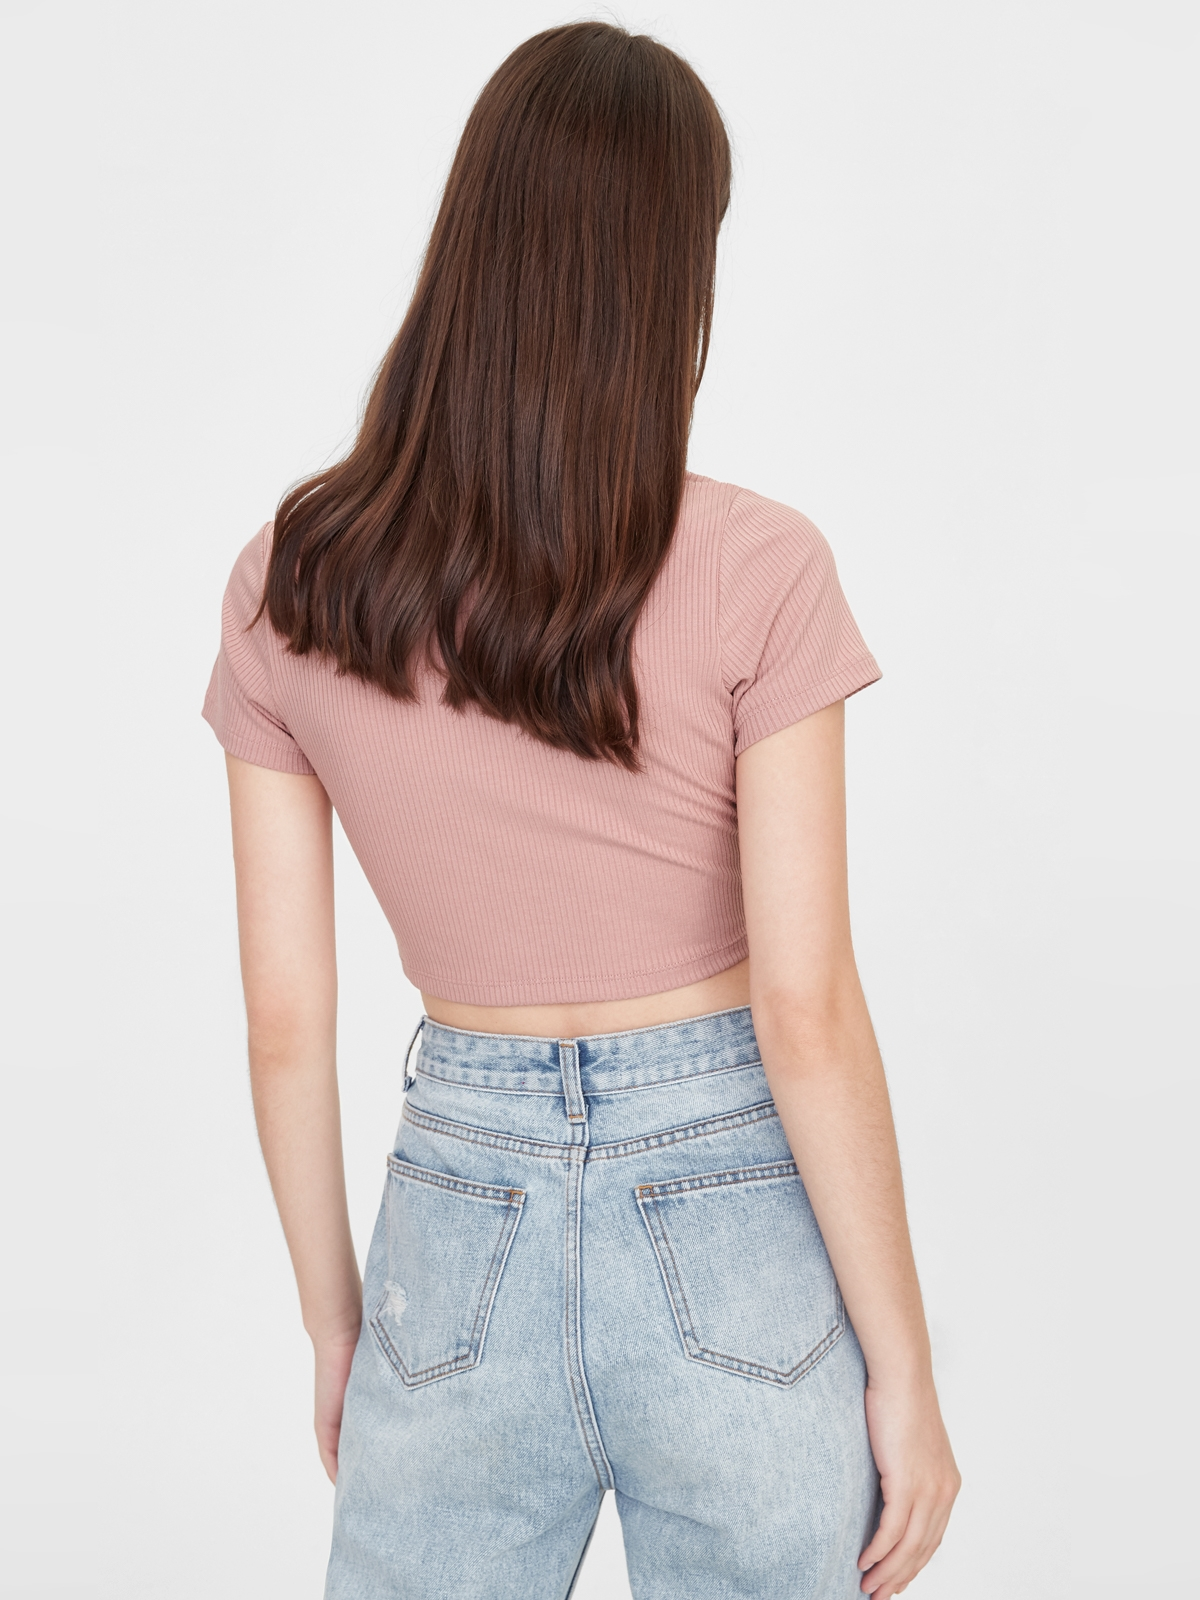 Rounded Cut Out Crop Top Pink